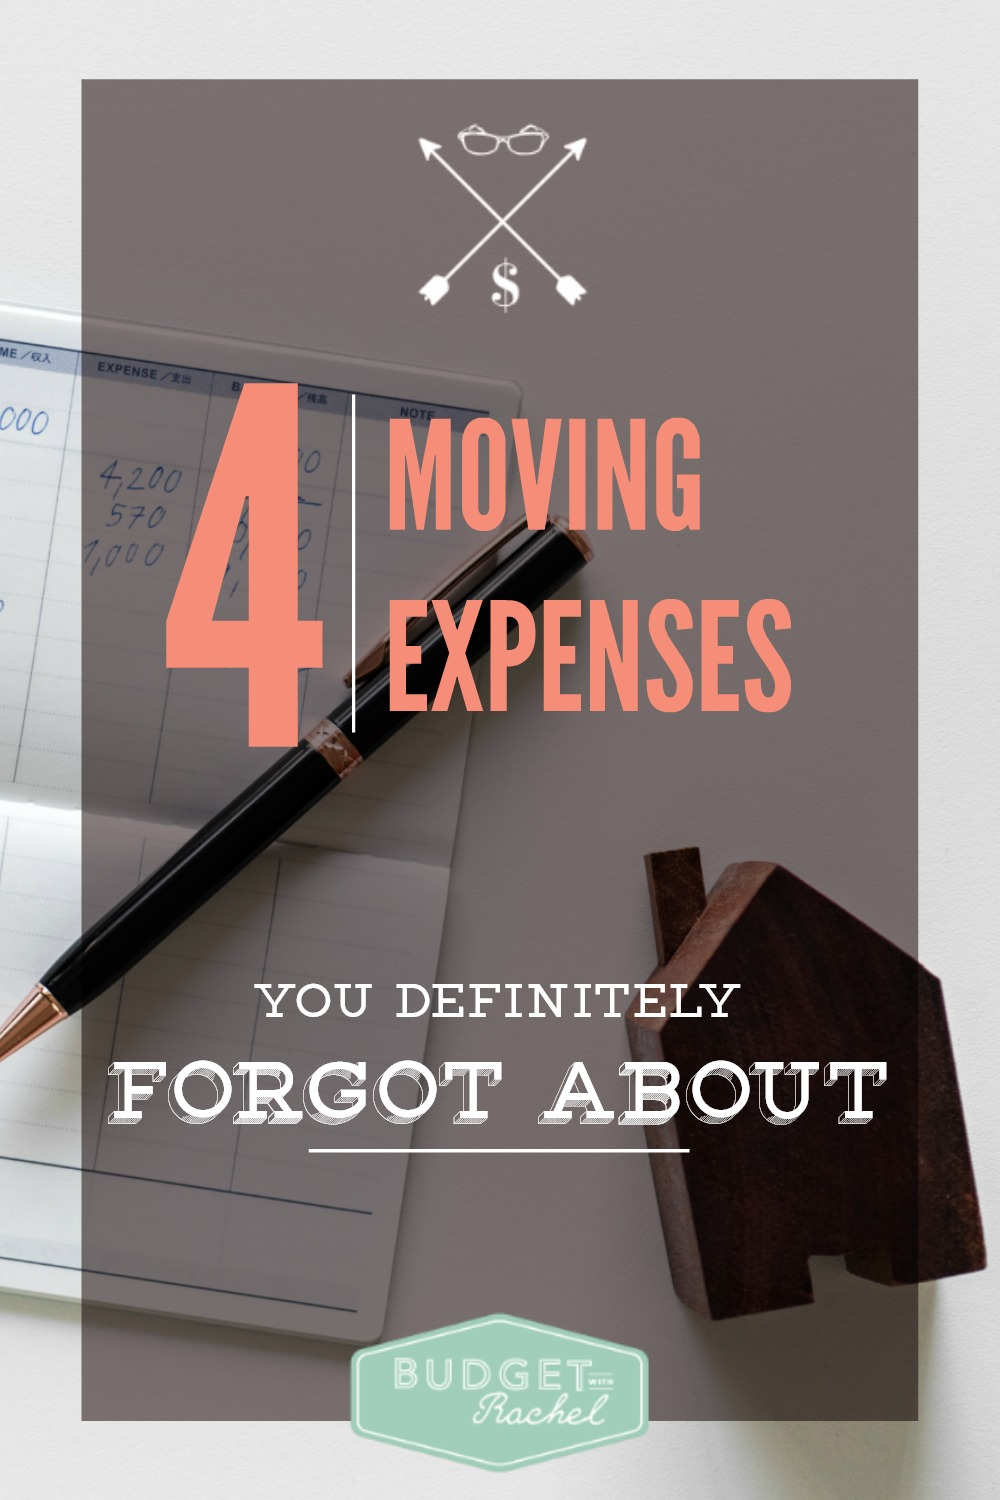 Prepare Your Budget for a Move:  4 Costs to Consider When Moving into Your New Home. I totally forgot 2 of these expenses! So thankful I found this before we moved. #3 is something I hadn't even thought of, but is so important. #4 is what I hate about moving, but it is a must before moving in all of our stuff. Such good advice and now our budget will be ready for a move!